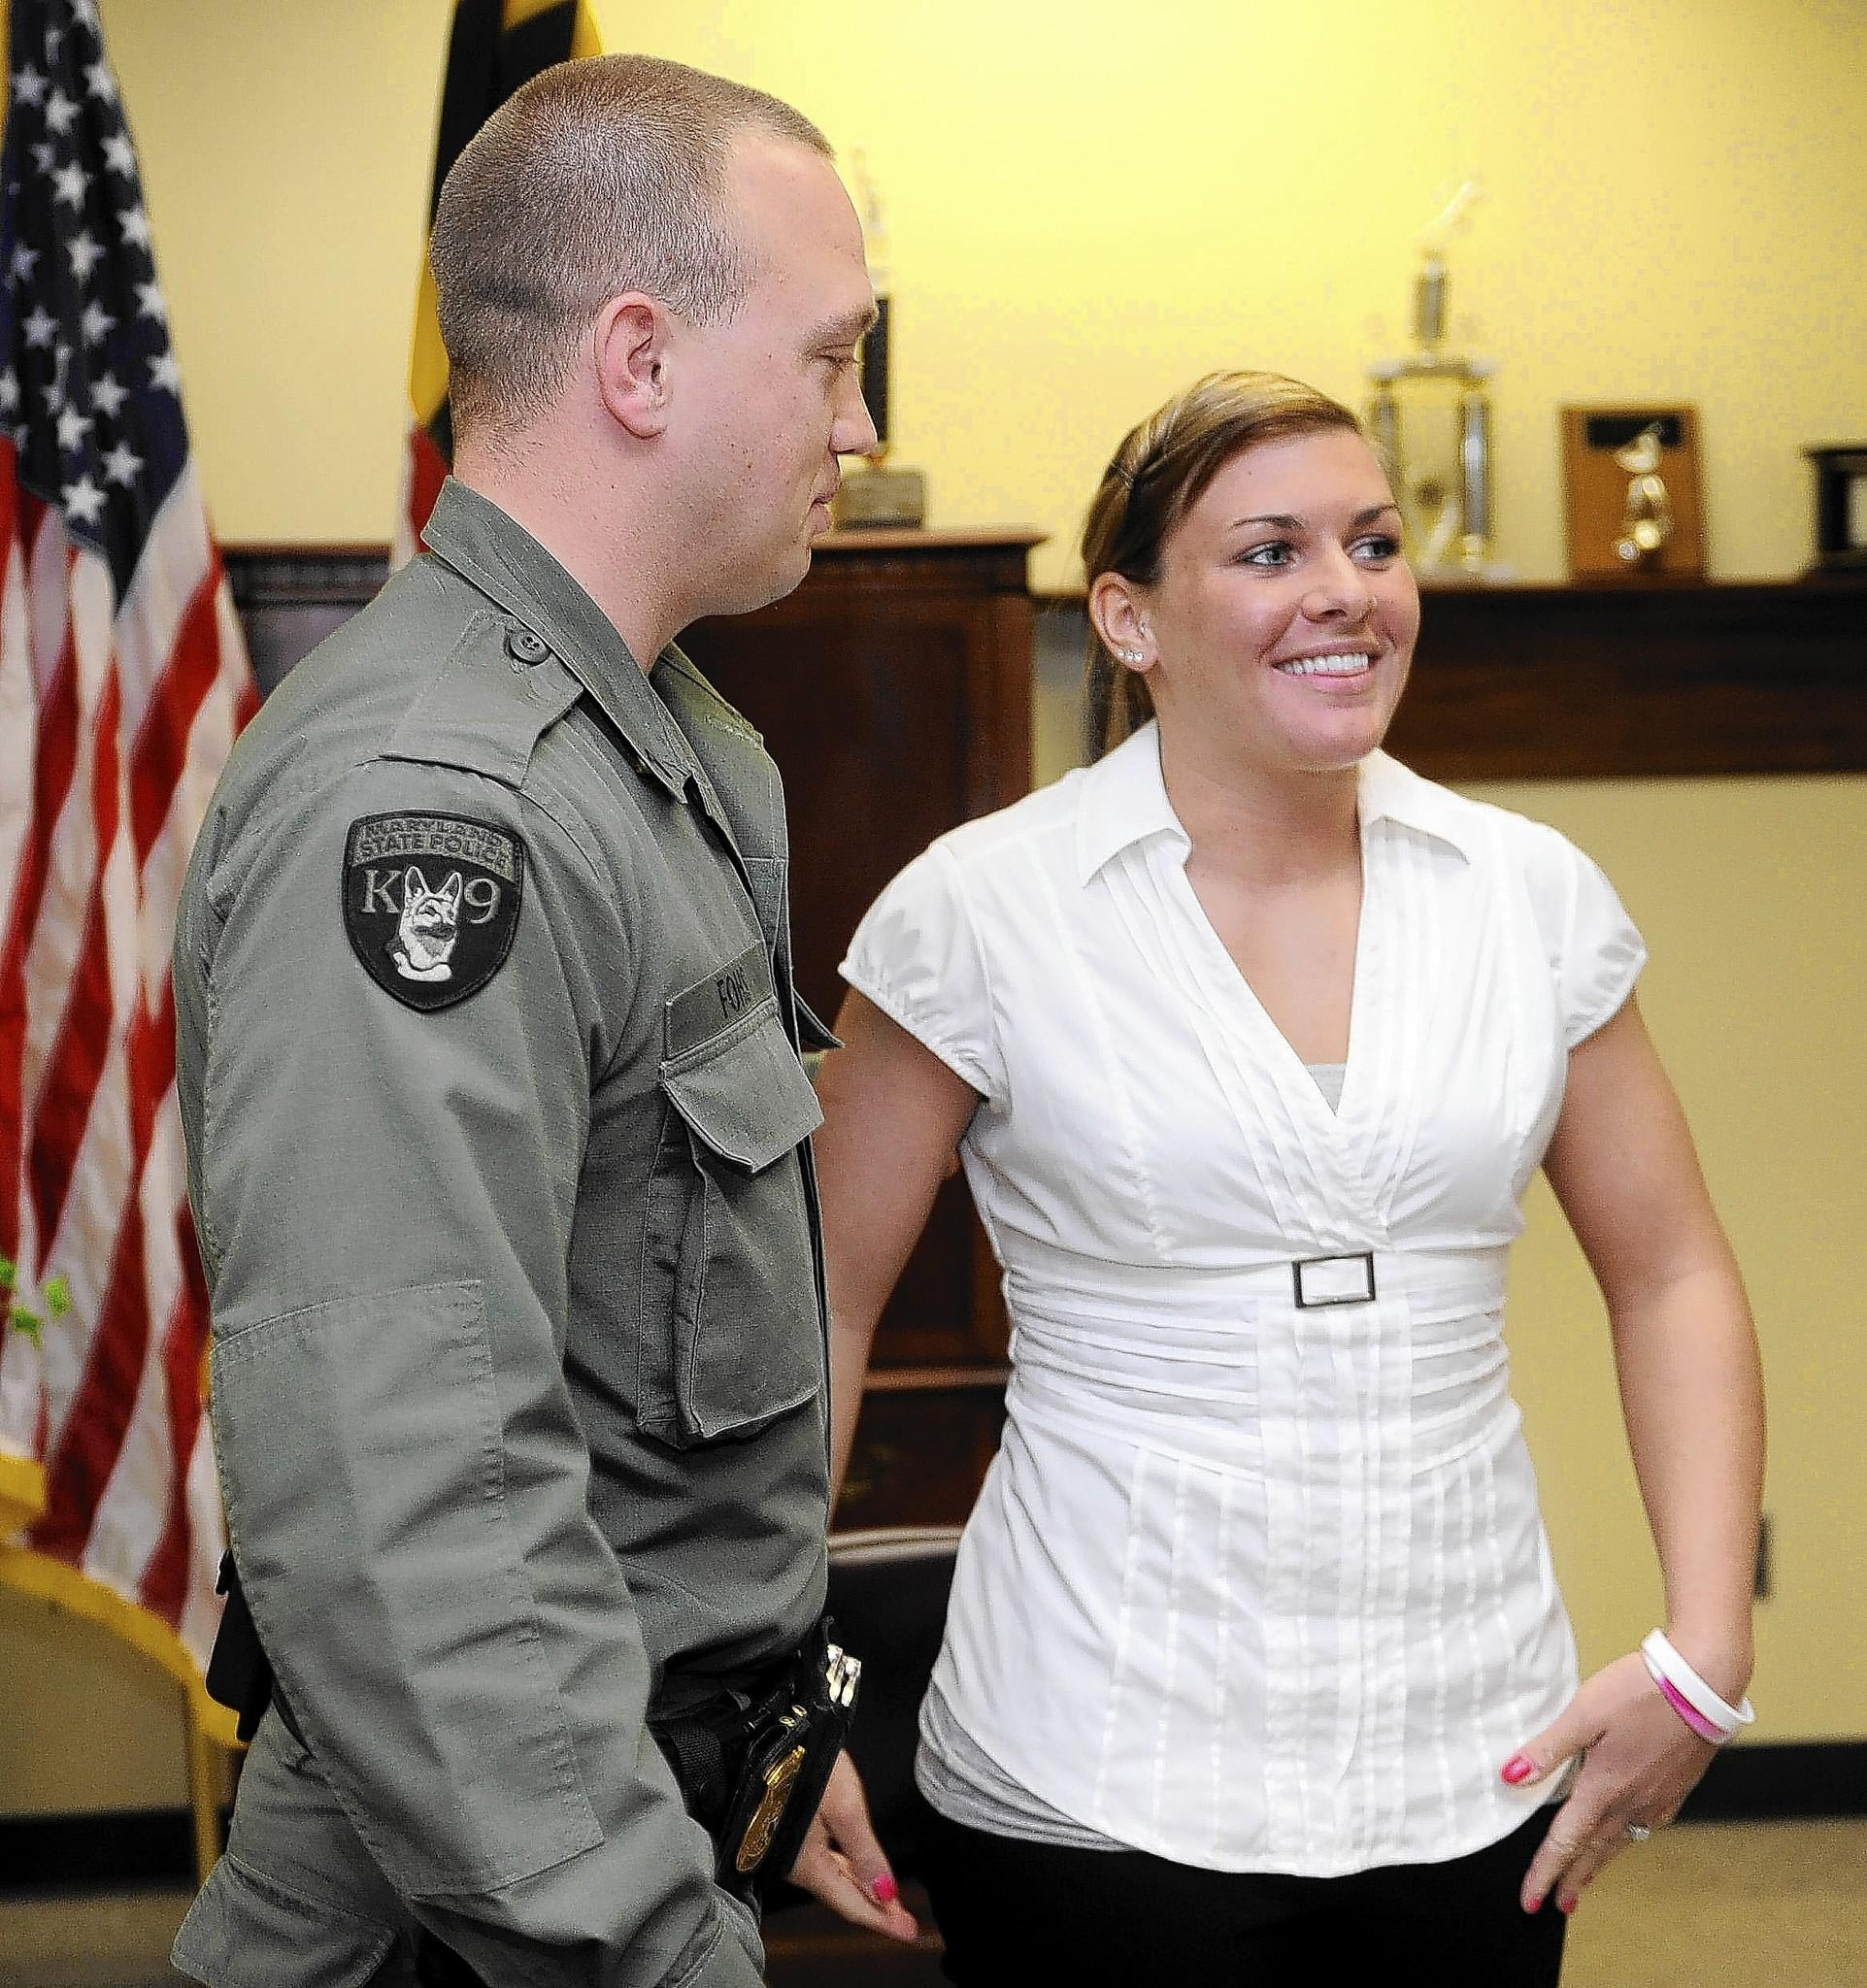 Maryland State Trooper First Class Jacqueline Kline, right, stands with Trooper First Class Justin Fohs, left. TFC Kline was injured in October when she was hit by a car during a traffic stop while backing up TFC Fohs. She said she credits his quick thinking and actions with saving her life.